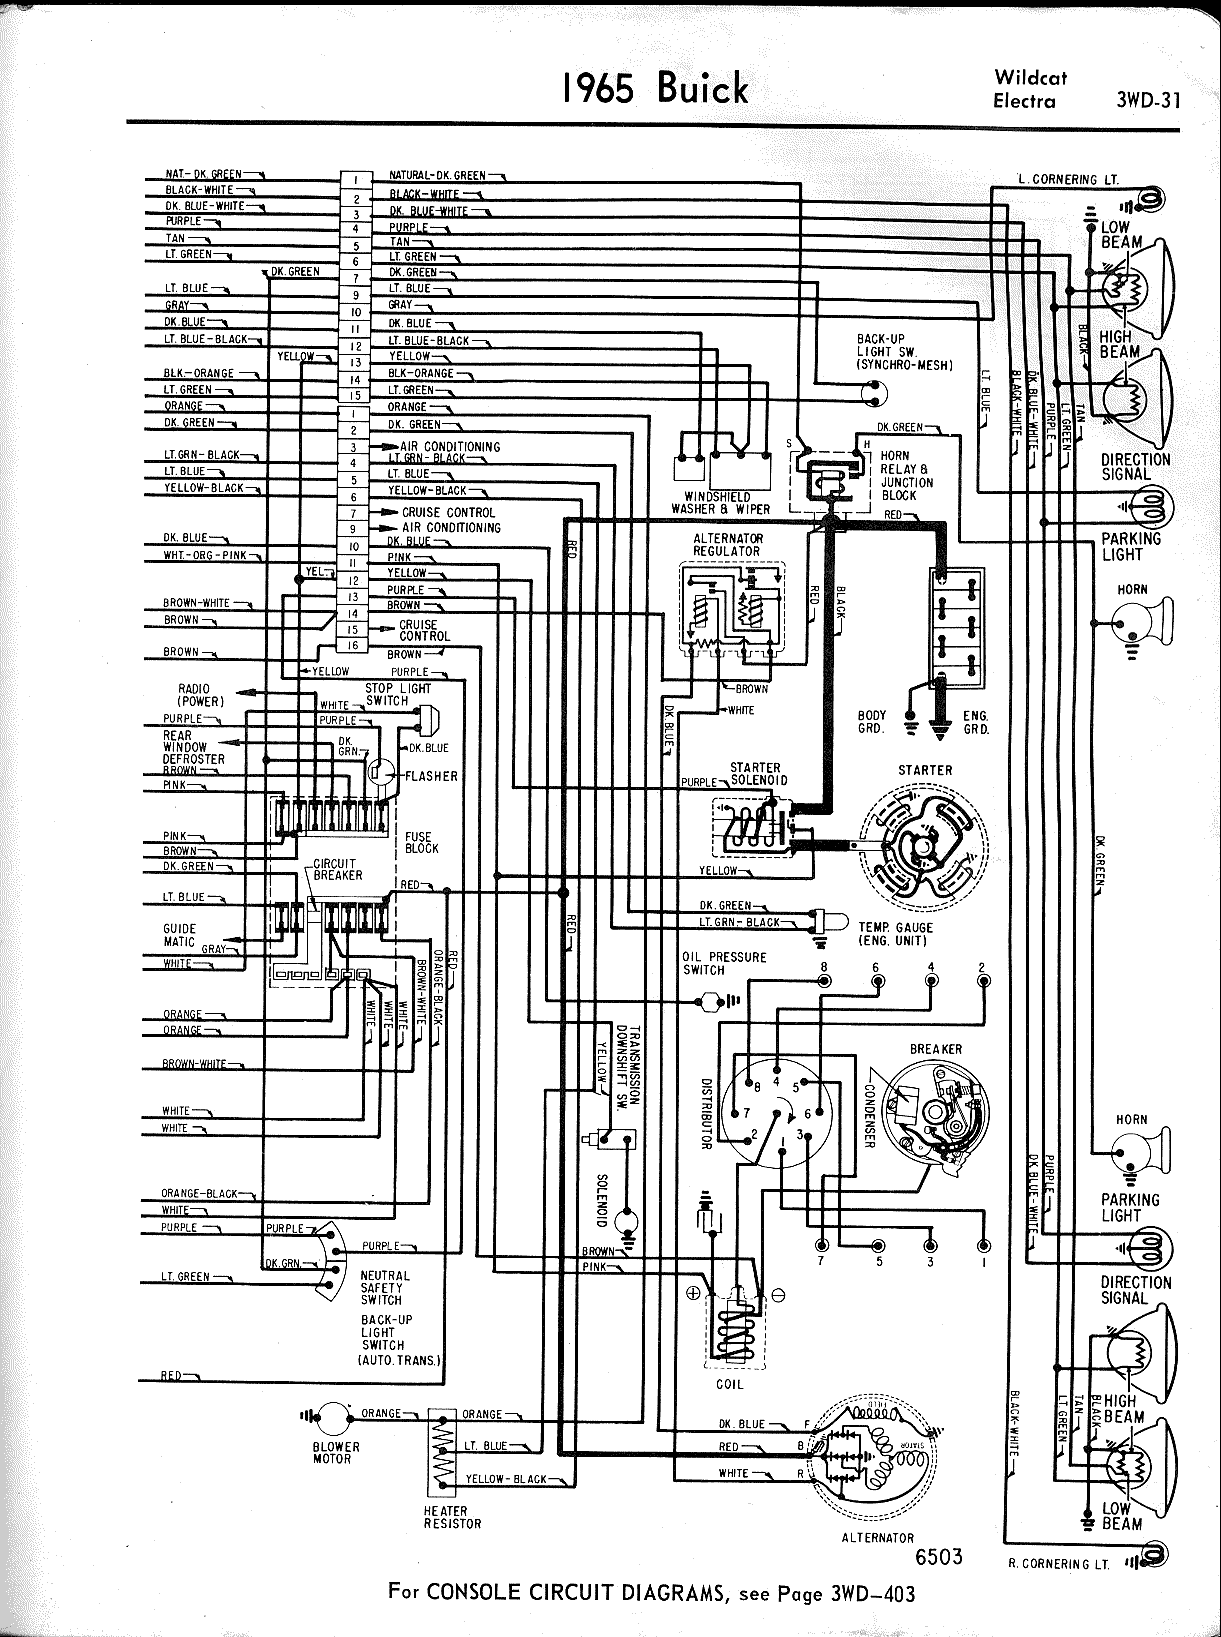 1999 buick century wiring diagram schematic 35 iec 60617 graphical symbols for diagrams 1989 lesabre free engine image